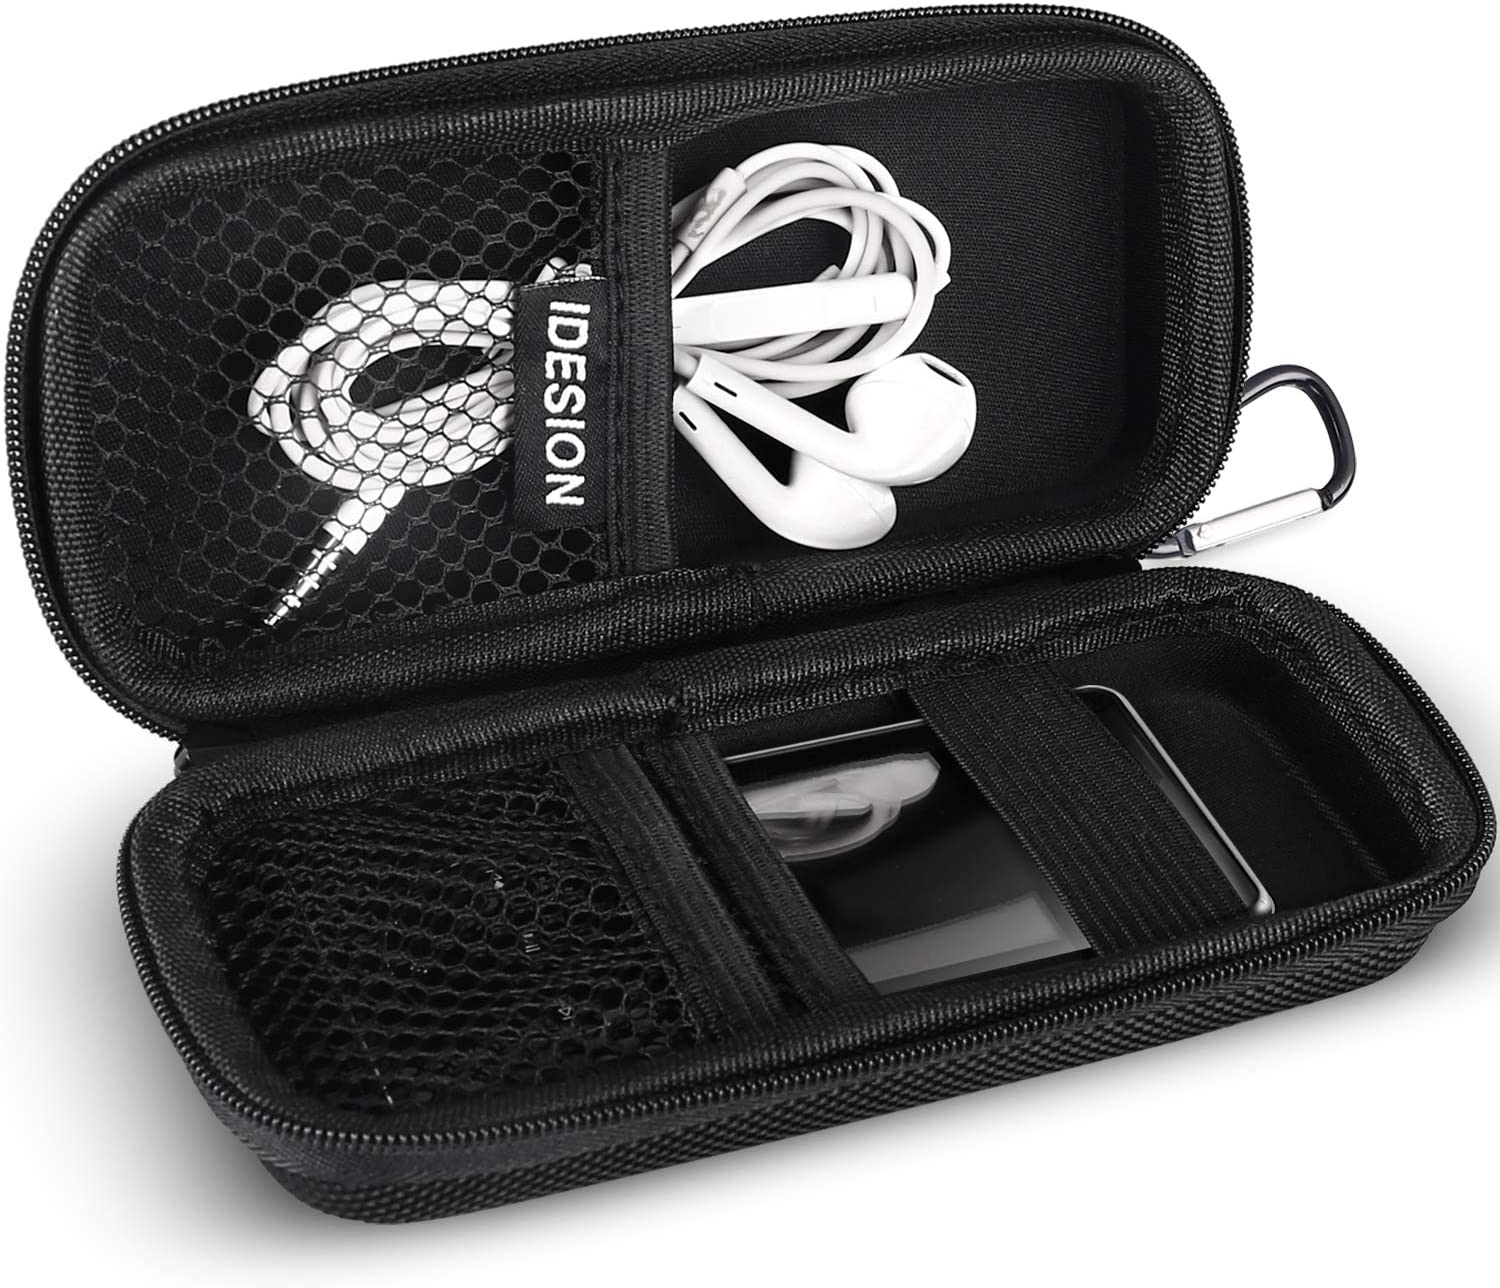 Durable Tough Hard Fabric MP3 Player cover Clamshell Case For SanDisk Sansa Clip